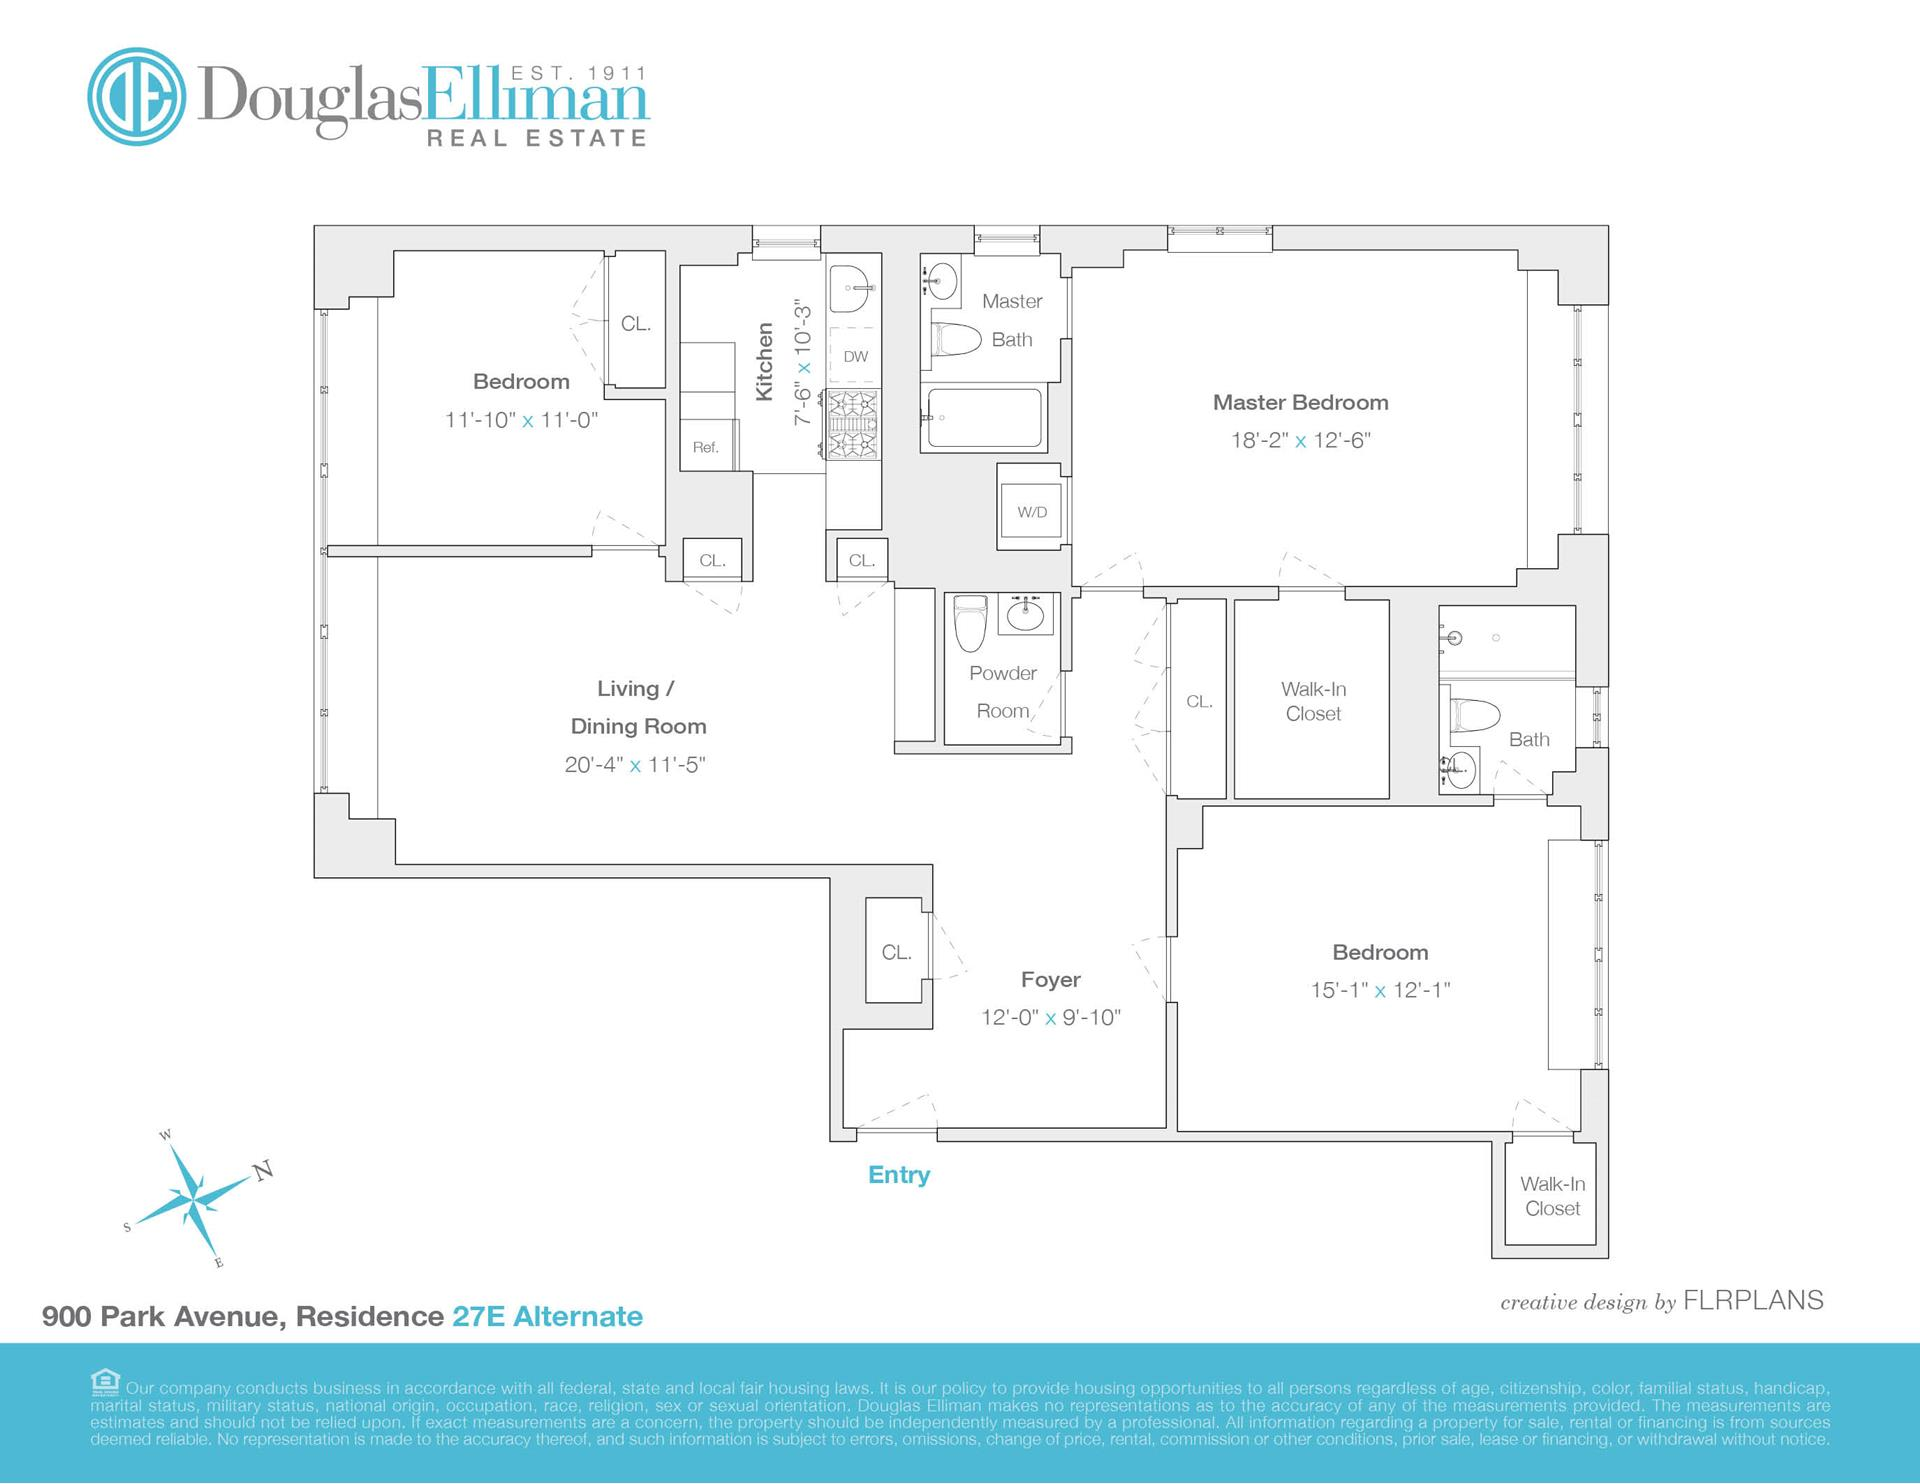 Floor plan of The Park 900 Condominium, 900 Park Avenue, 27E - Upper East Side, New York